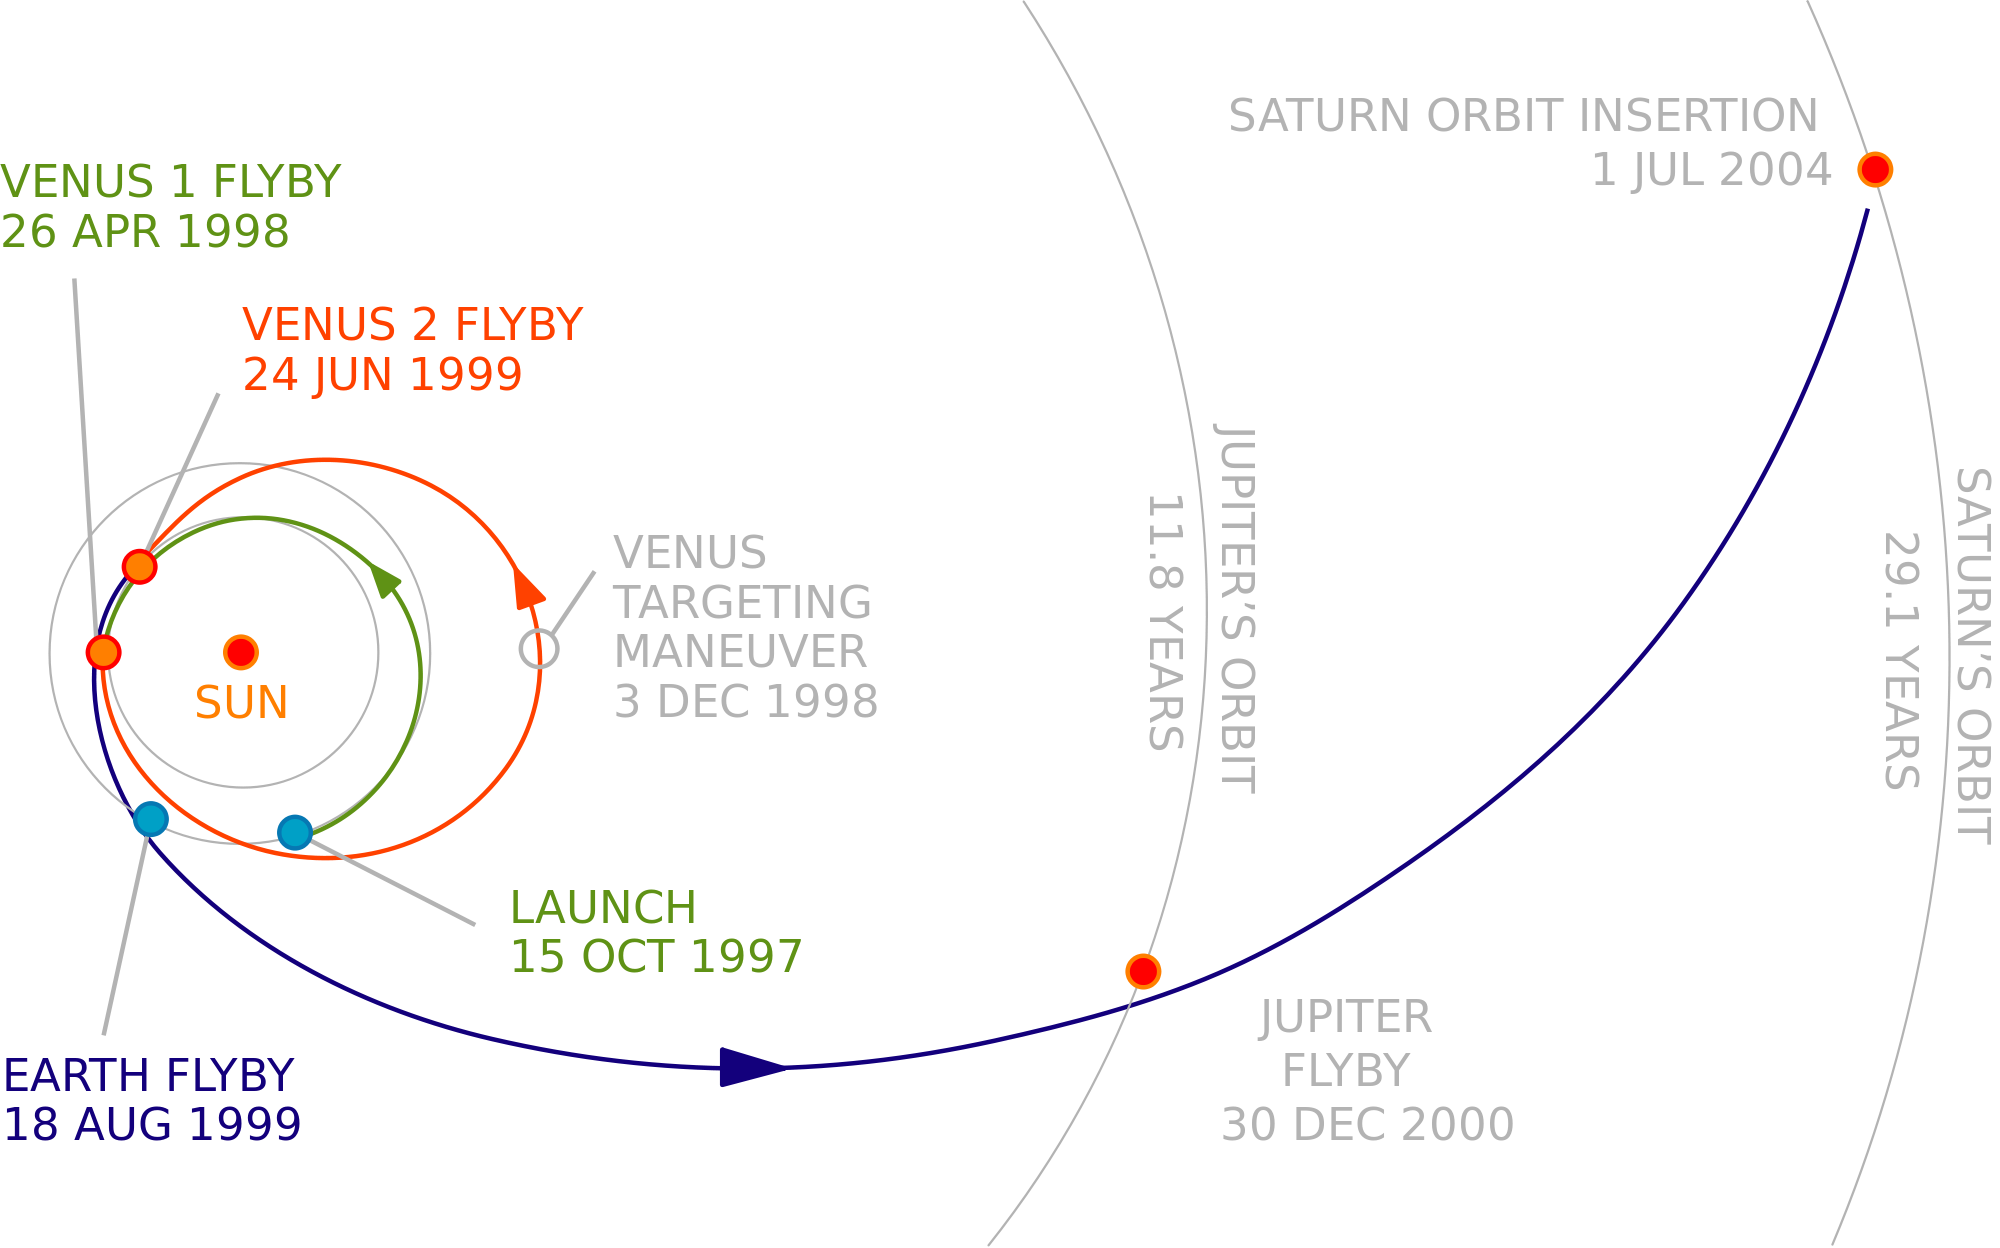 A graphic illustrating Cassini's two flybys of Venus, and one each of Earth and Jupiter, so that the spacecraft could reach Saturn.